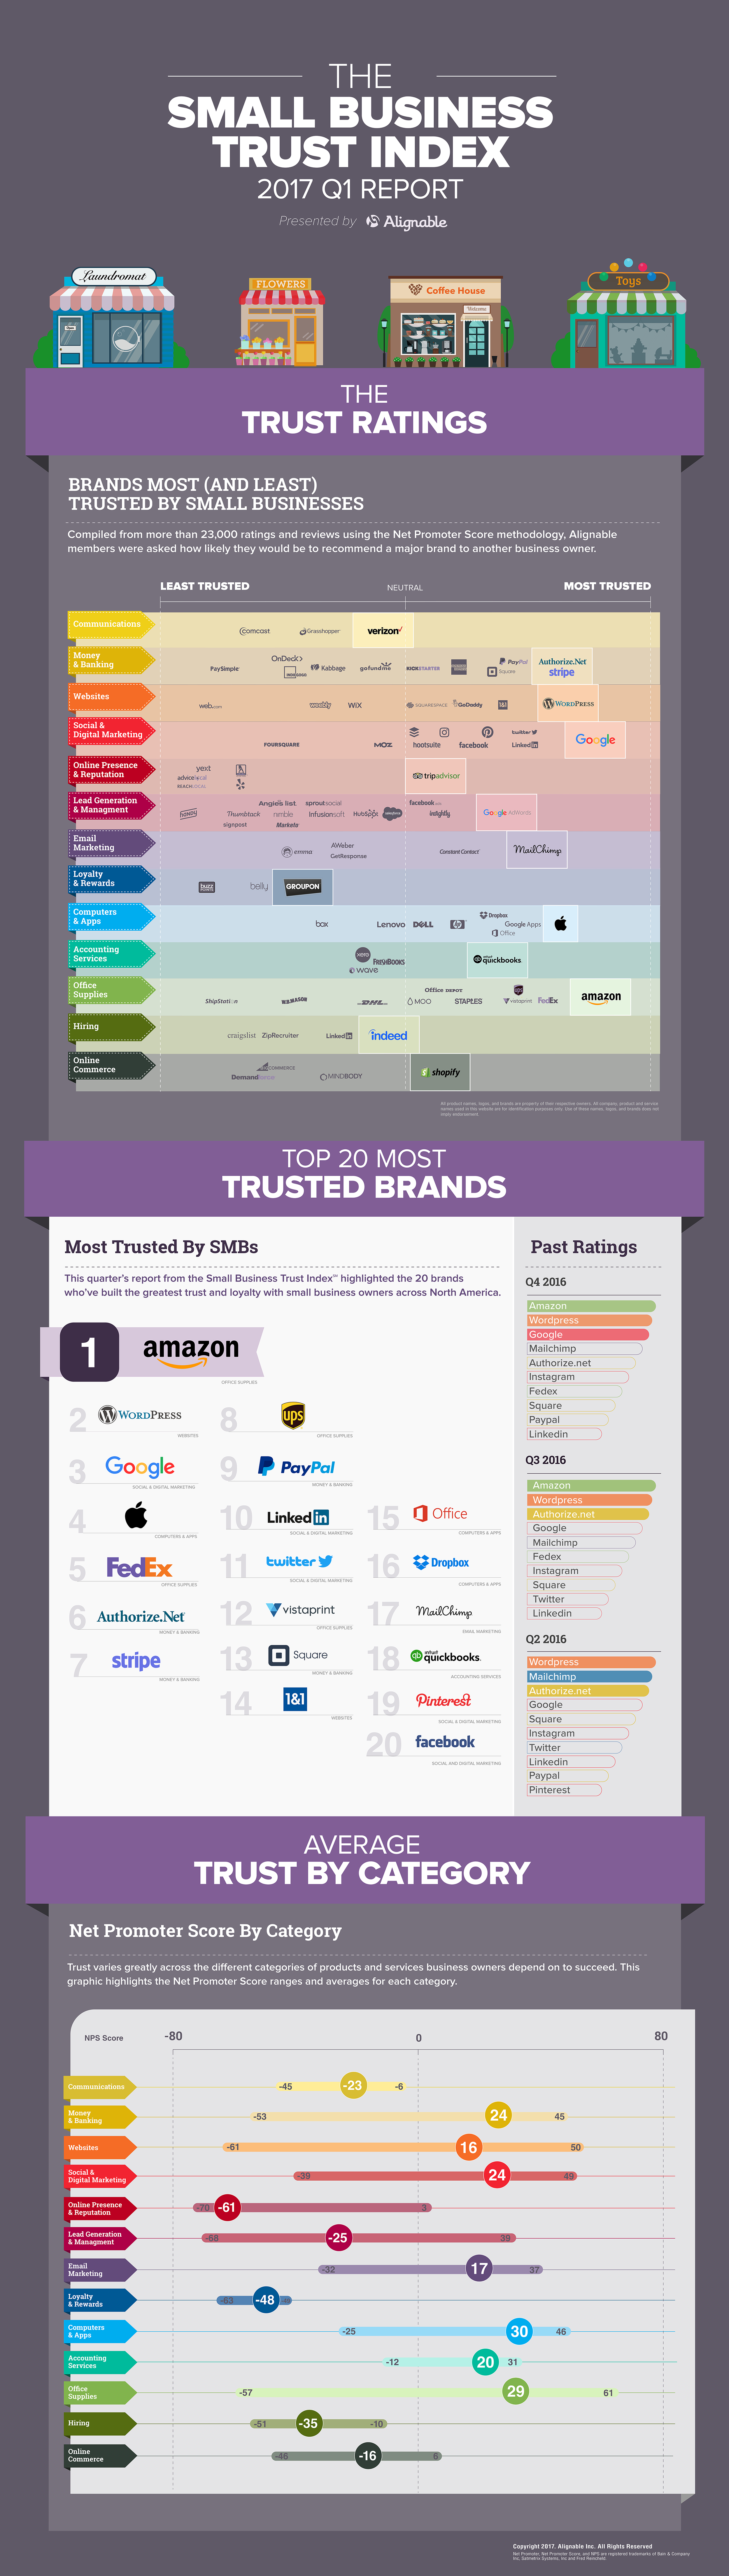 The Most And Least Trusted Brands Among Smallbusiness Owners